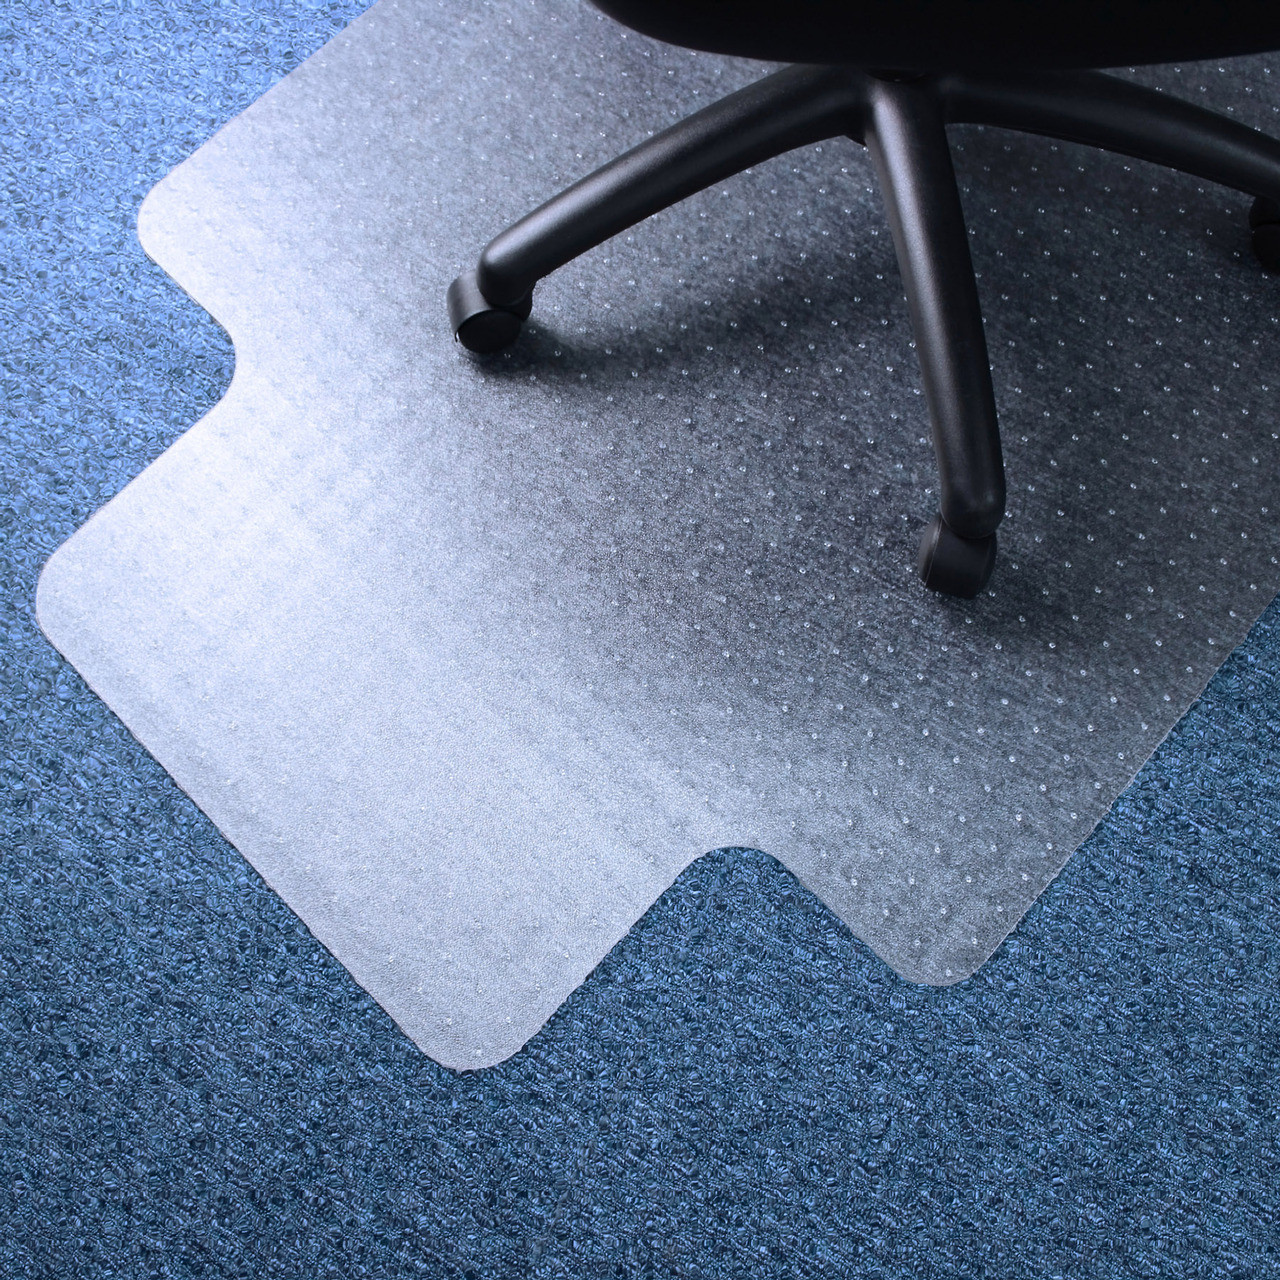 Vinyle Pvc Marvelux Vinyl Pvc Lipped Chair Mat For Very Low Pile Carpets Transparent Carpet Protector Multiple Sizes